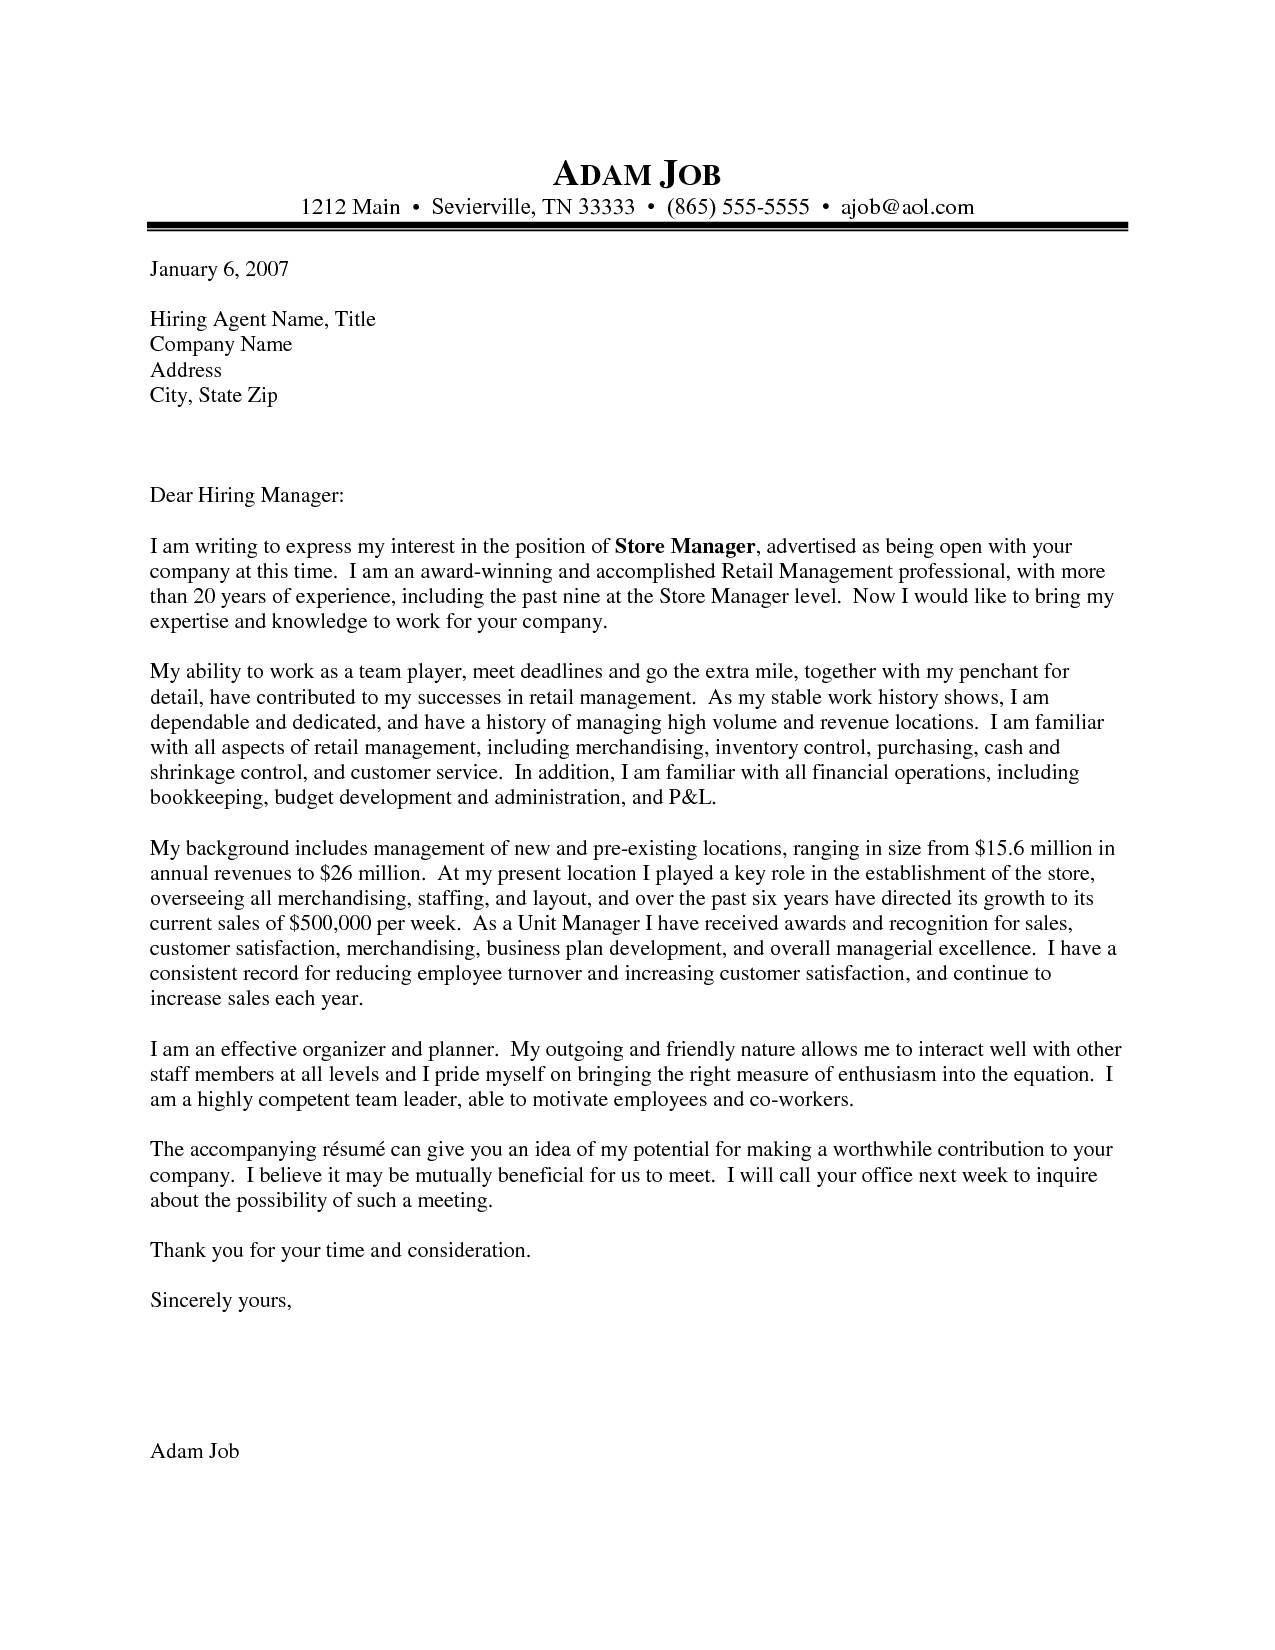 Warehouse Manager Cover Letter Template - Writing A Cover Letter for Retail 10 Awesome Collection Sample